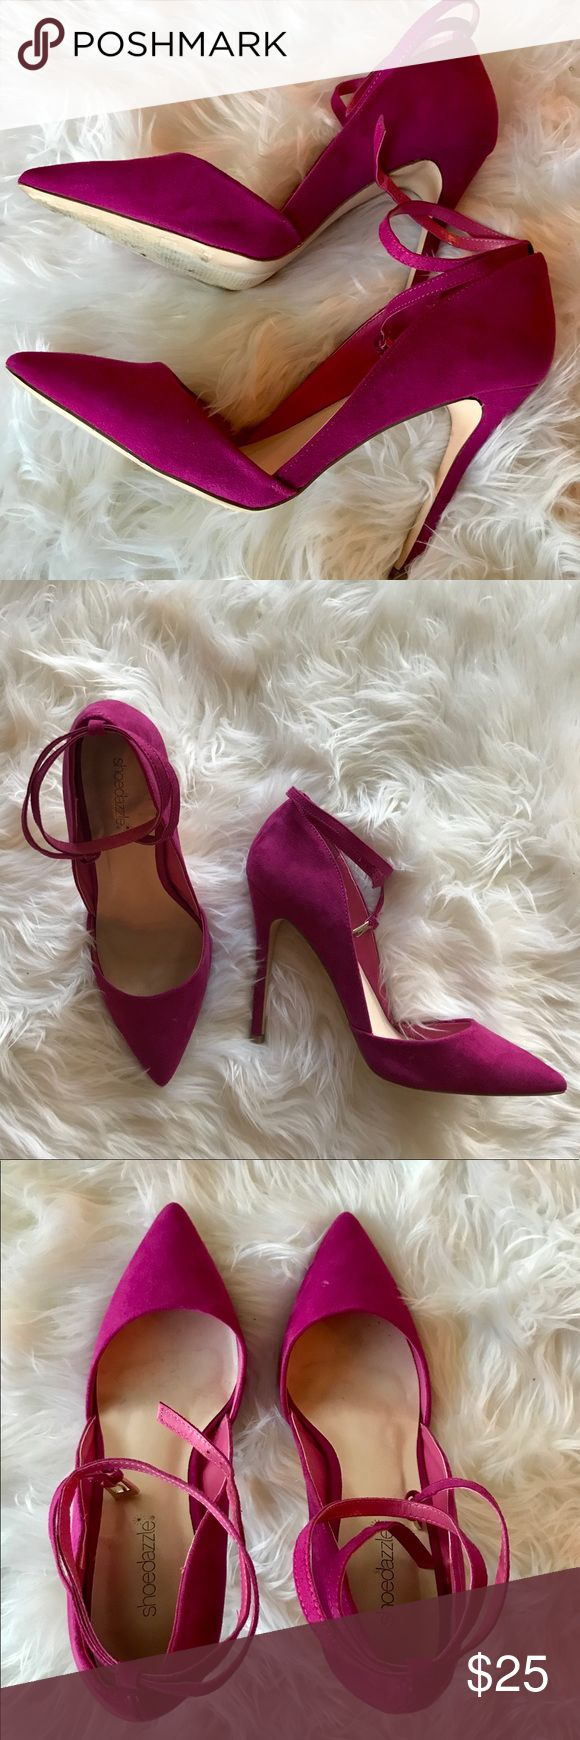 Shoe Dazzle Magenta Pumps Worn once! Comfortable, gorgeous pumps! Size US 10, UK 40. Removable wrap around strap. Fits true to size. Approx. 4 inch heel. Original box not included! Shoe Dazzle Shoes Heels